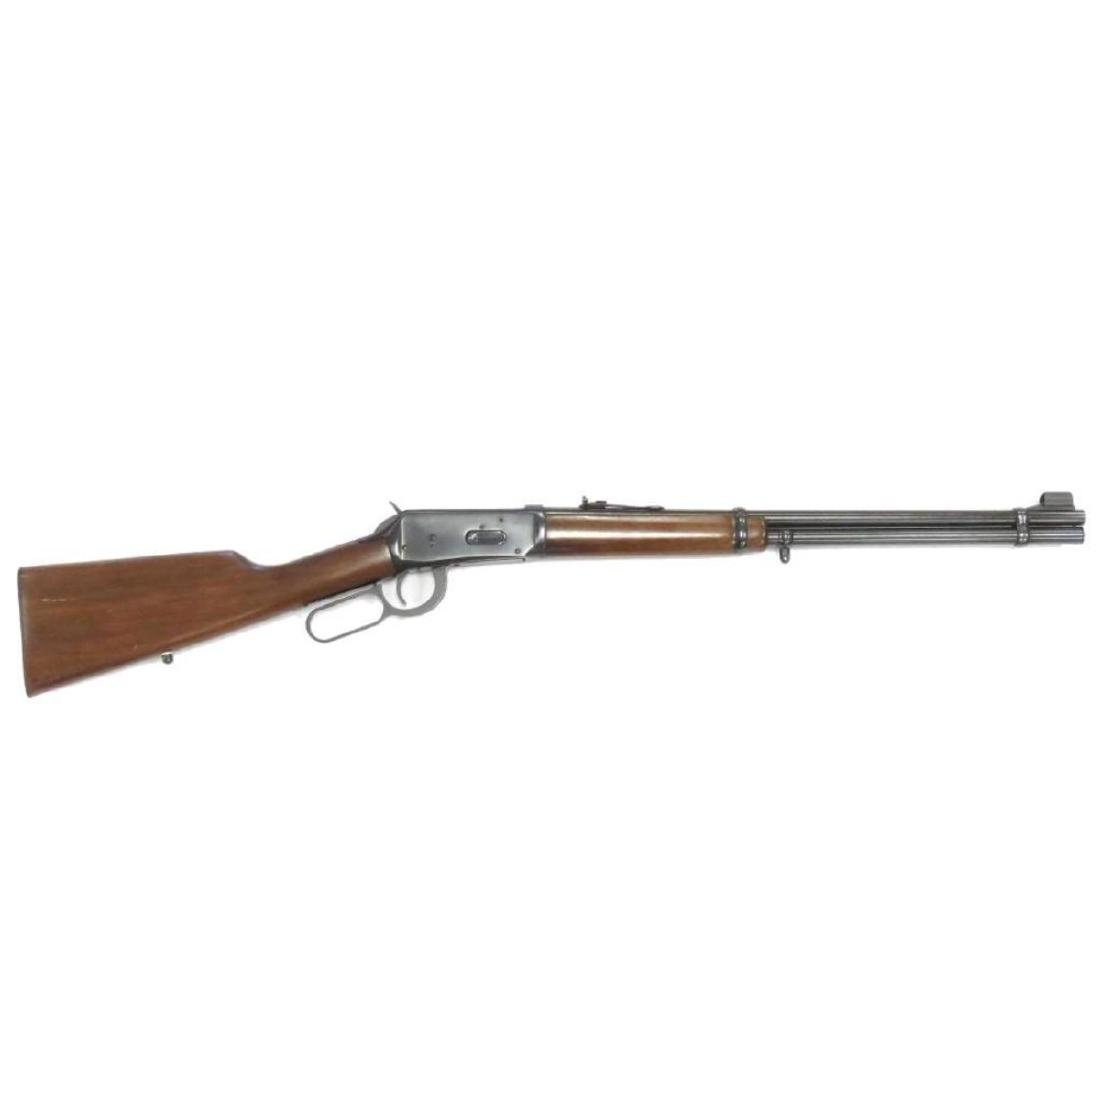 **Ncs Check** Winchester Model 94, 30-30 Win Lever